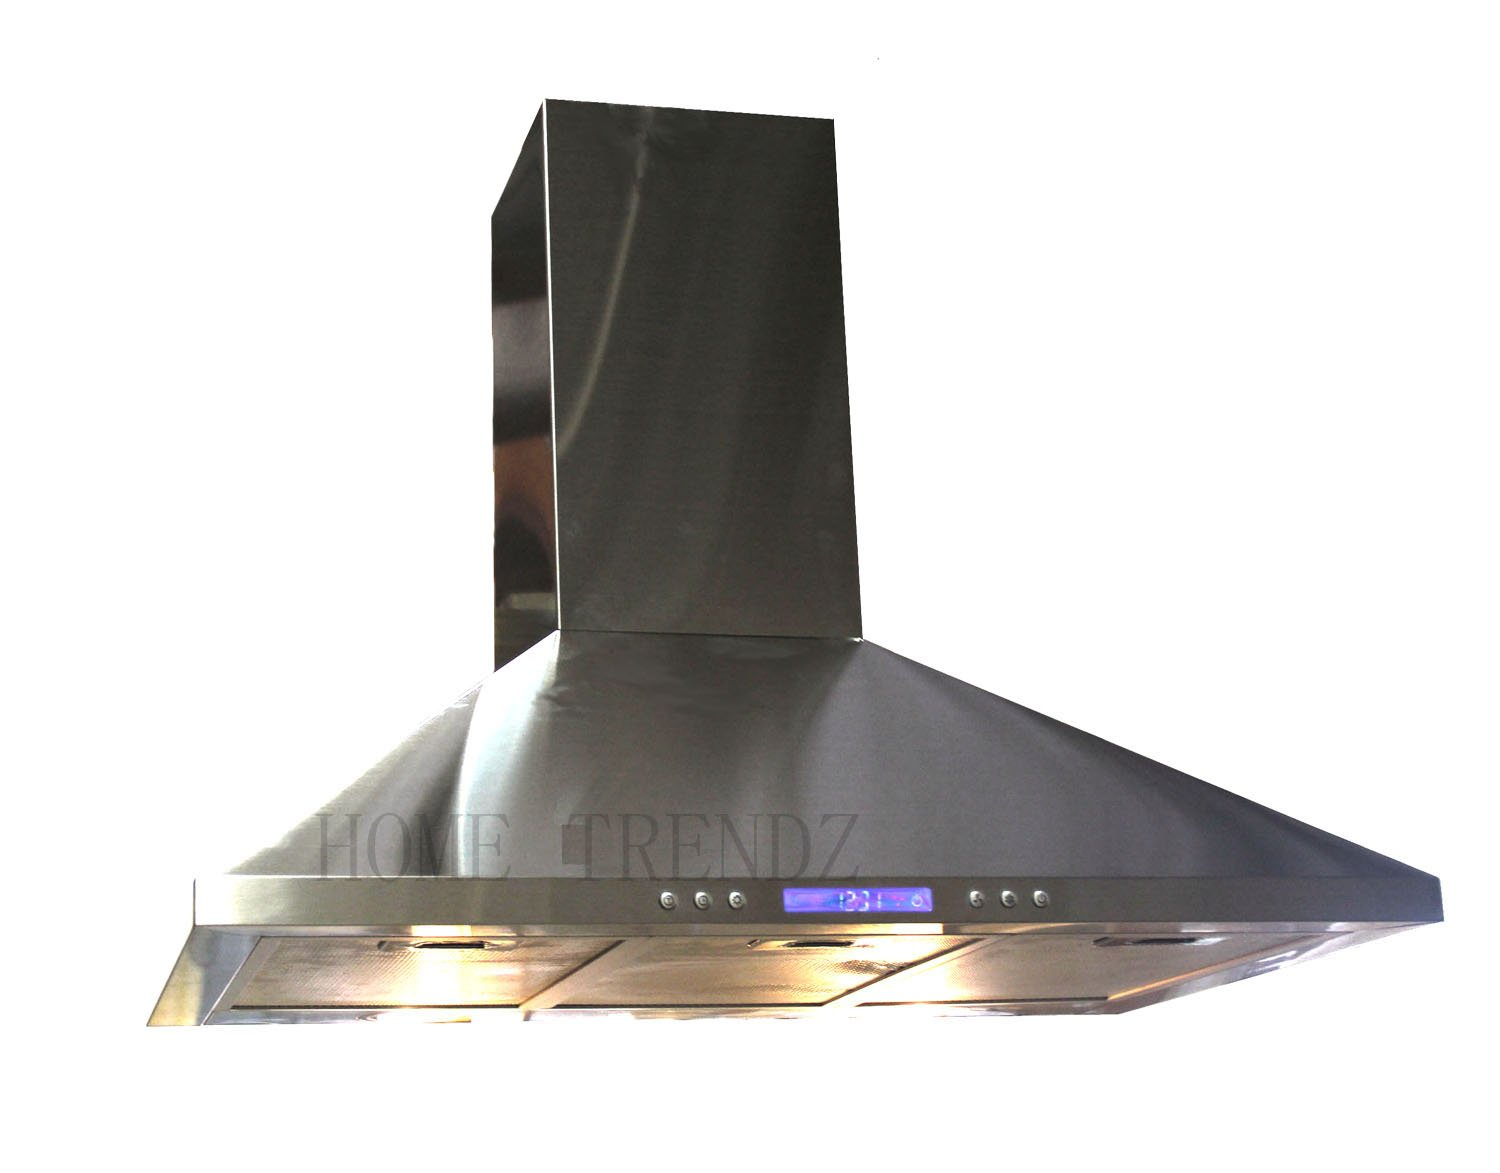 "30"" Kitchen Wall Mount Stainless Steel Range Hood Stove Vents Brushed Nickel"